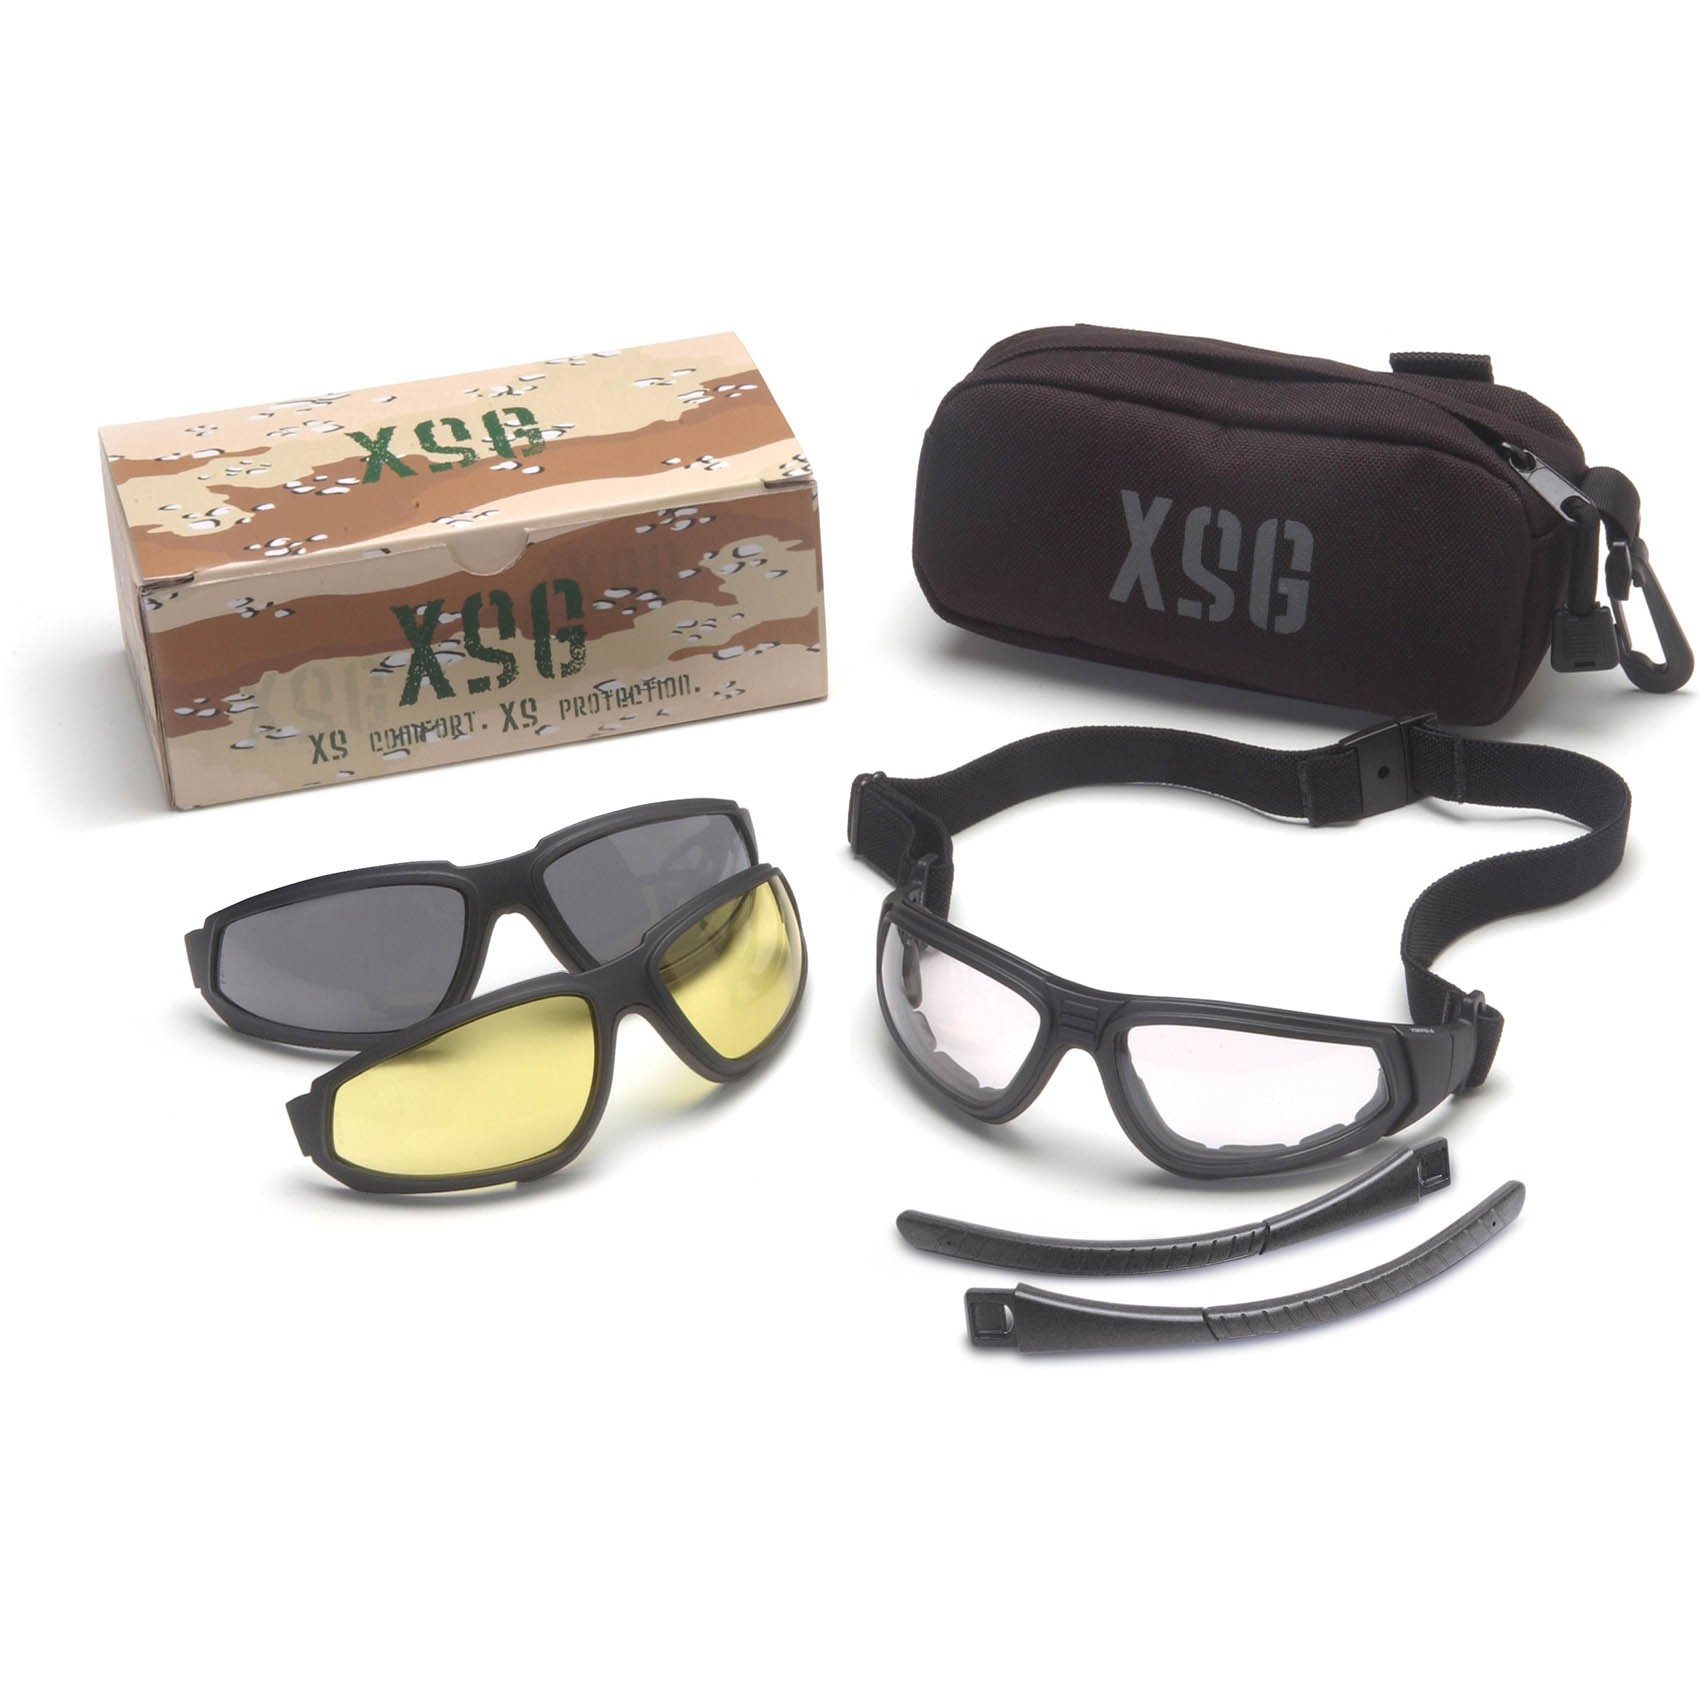 Eyeglass Frames With Interchangeable Lenses : Pyramex GB4010KIT XSG Glasses/Goggles Interchangeable Lens ...